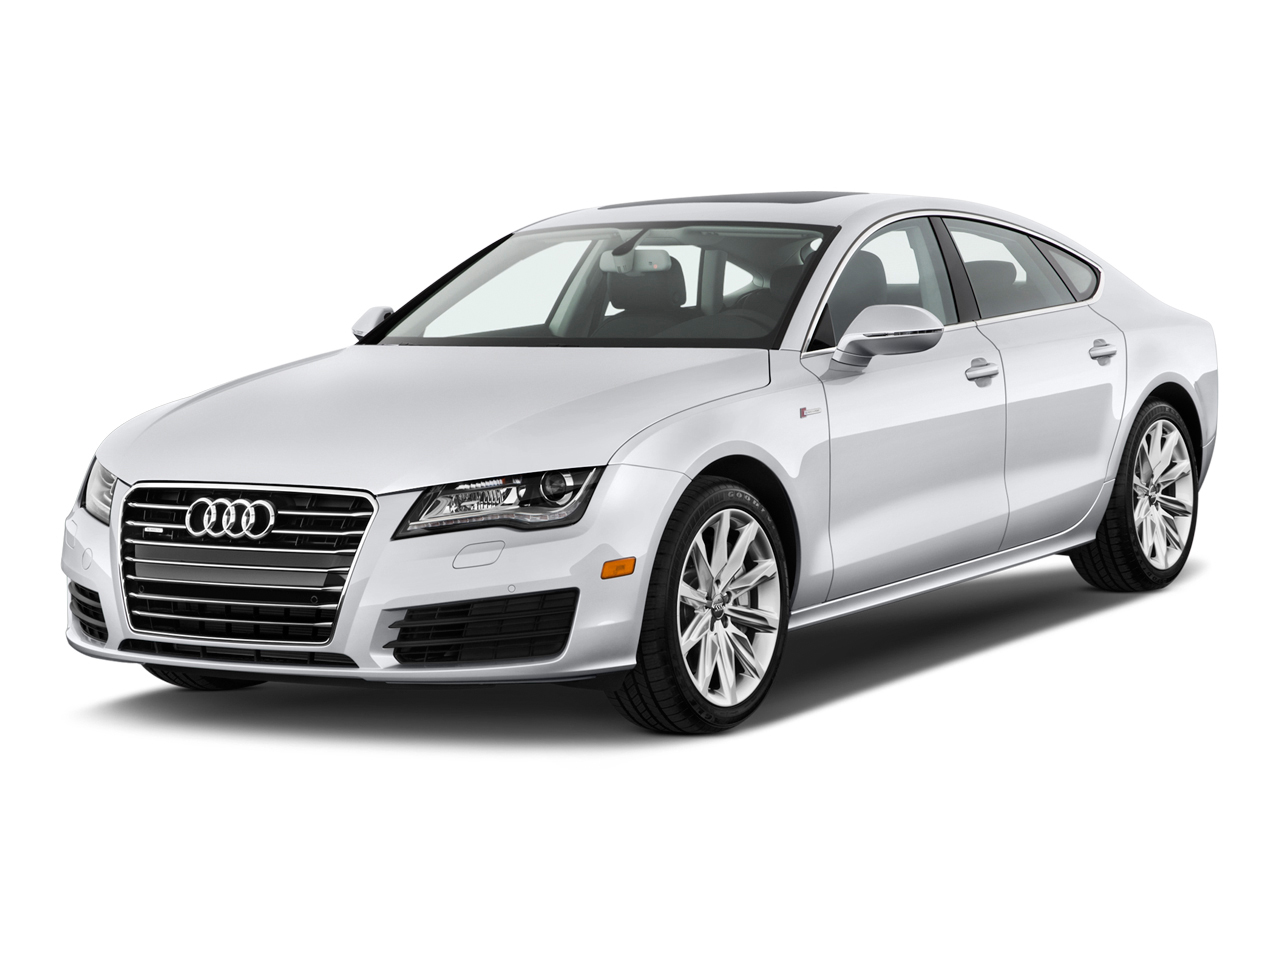 2012 Audi A7 Review, Ratings, Specs, Prices, and Photos - The Car Connection